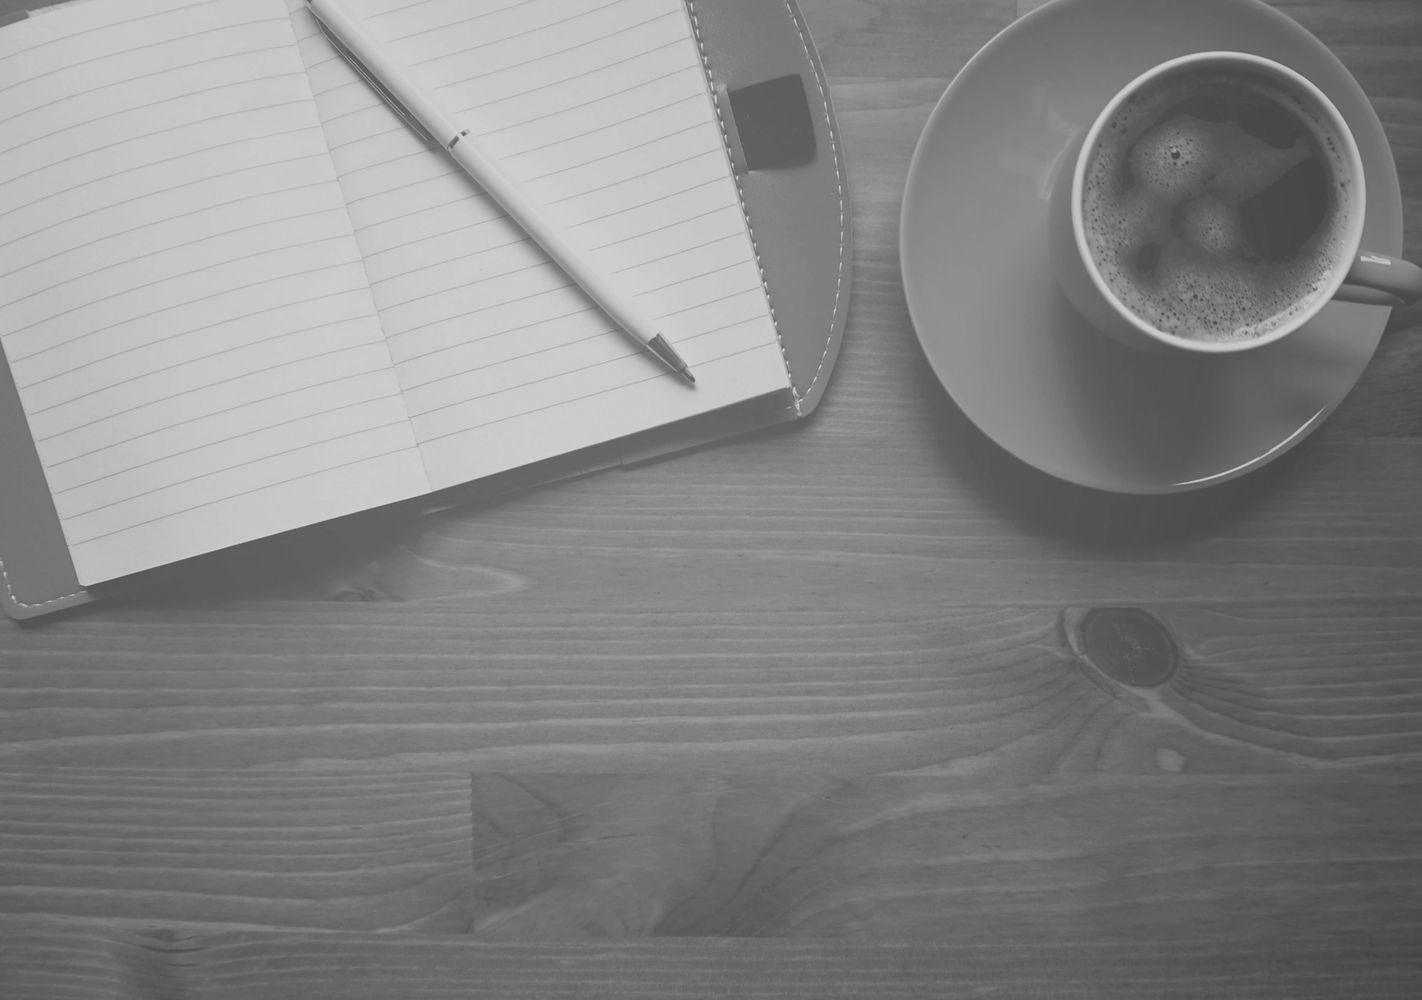 Image of a cup of coffee & a note pad, The intention is to express thoughts through written words